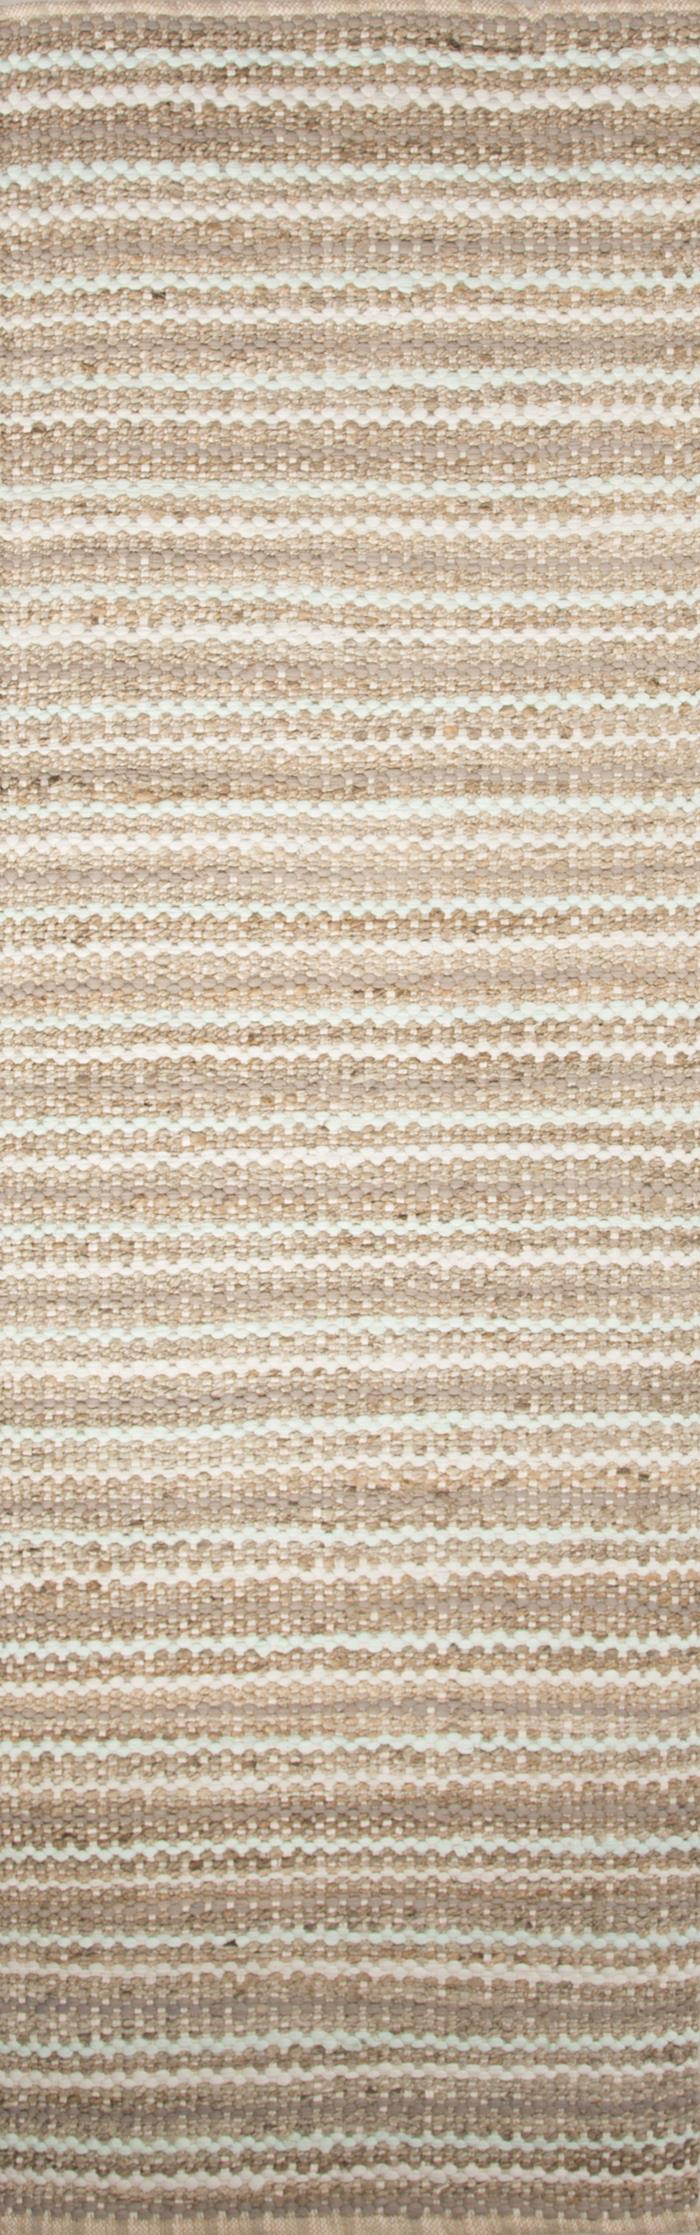 Andes 2.6 x 9 Rug by JAIPUR Rugs at Sprintz Furniture